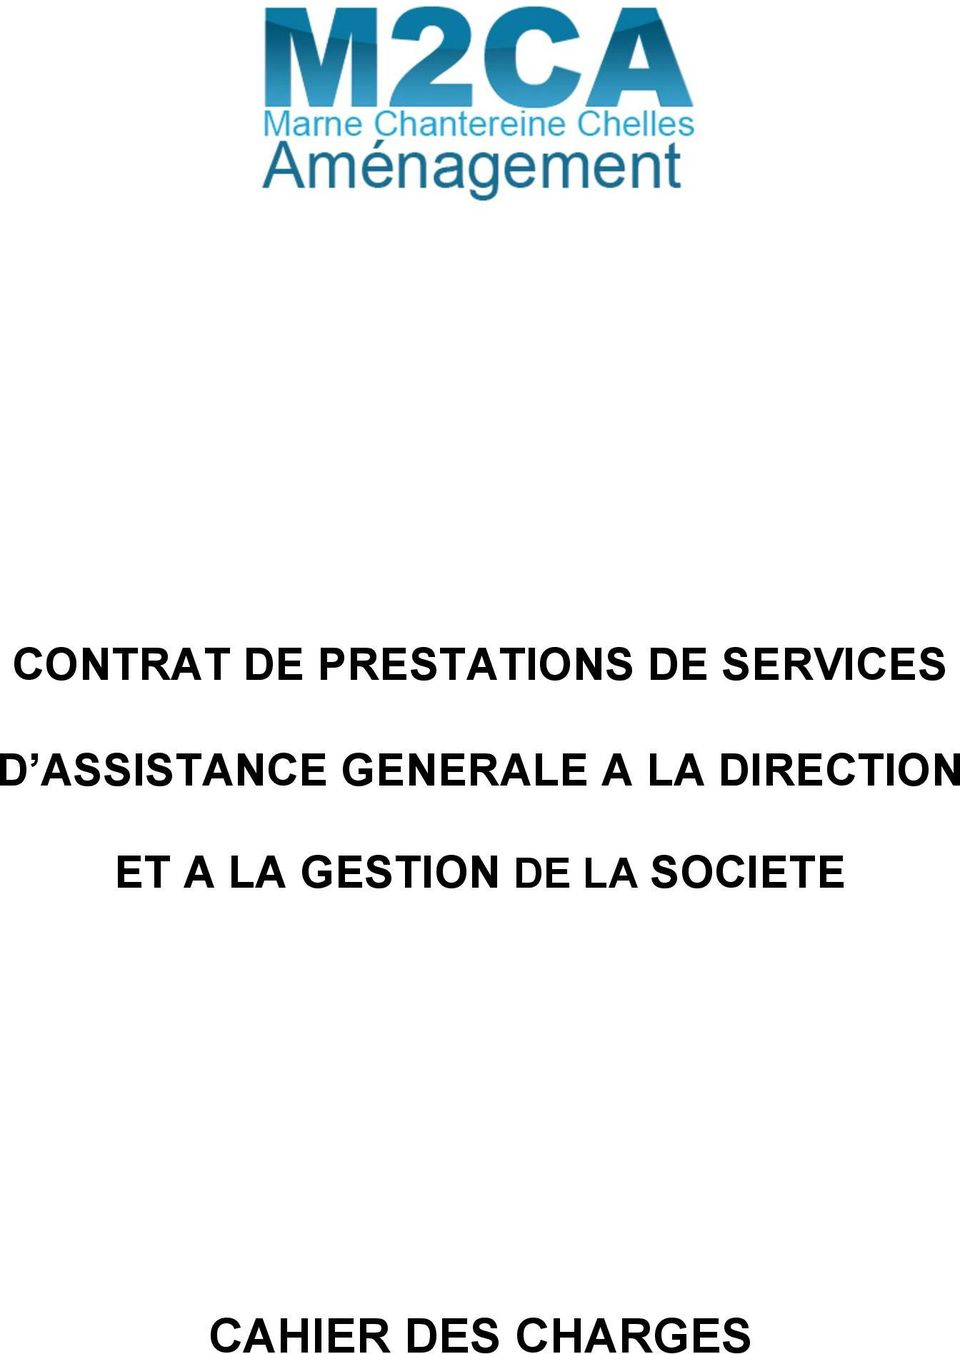 GENERALE A LA DIRECTION ET A